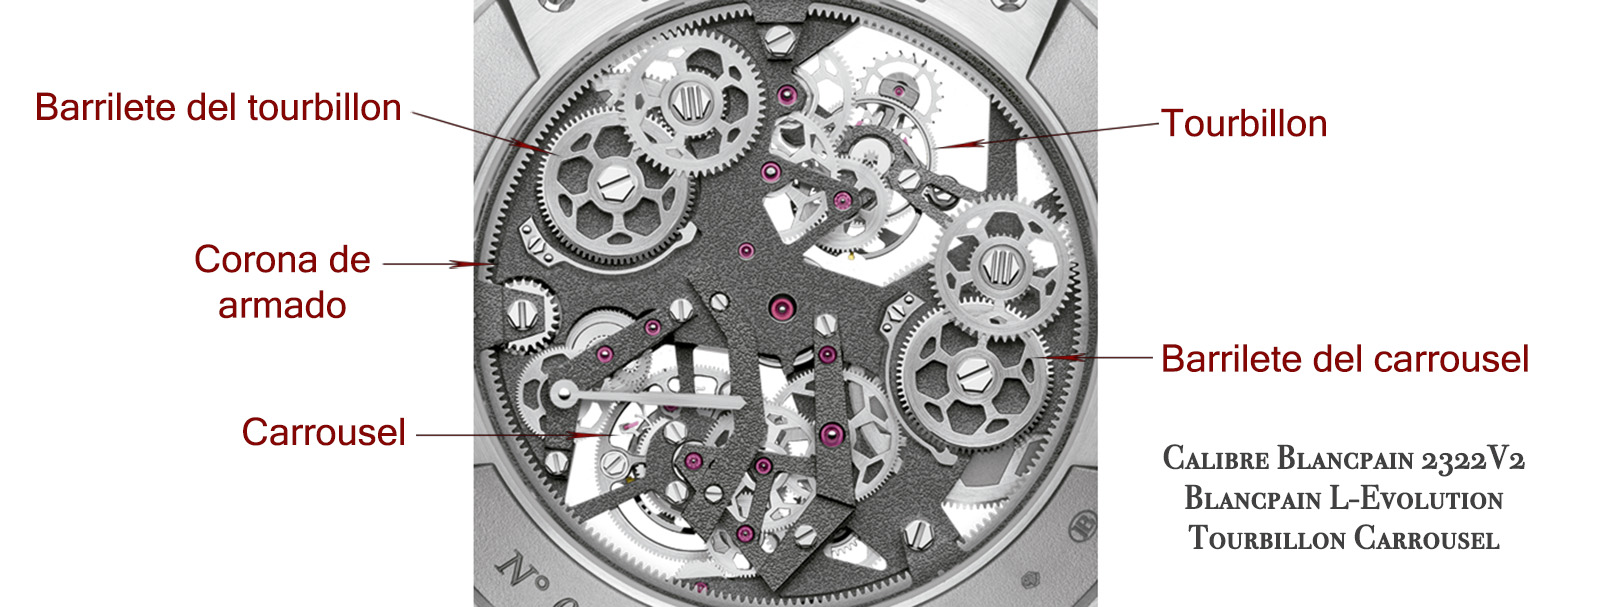 Blancpain L-Evolution Tourbillon Carrousel crop trasera infografía